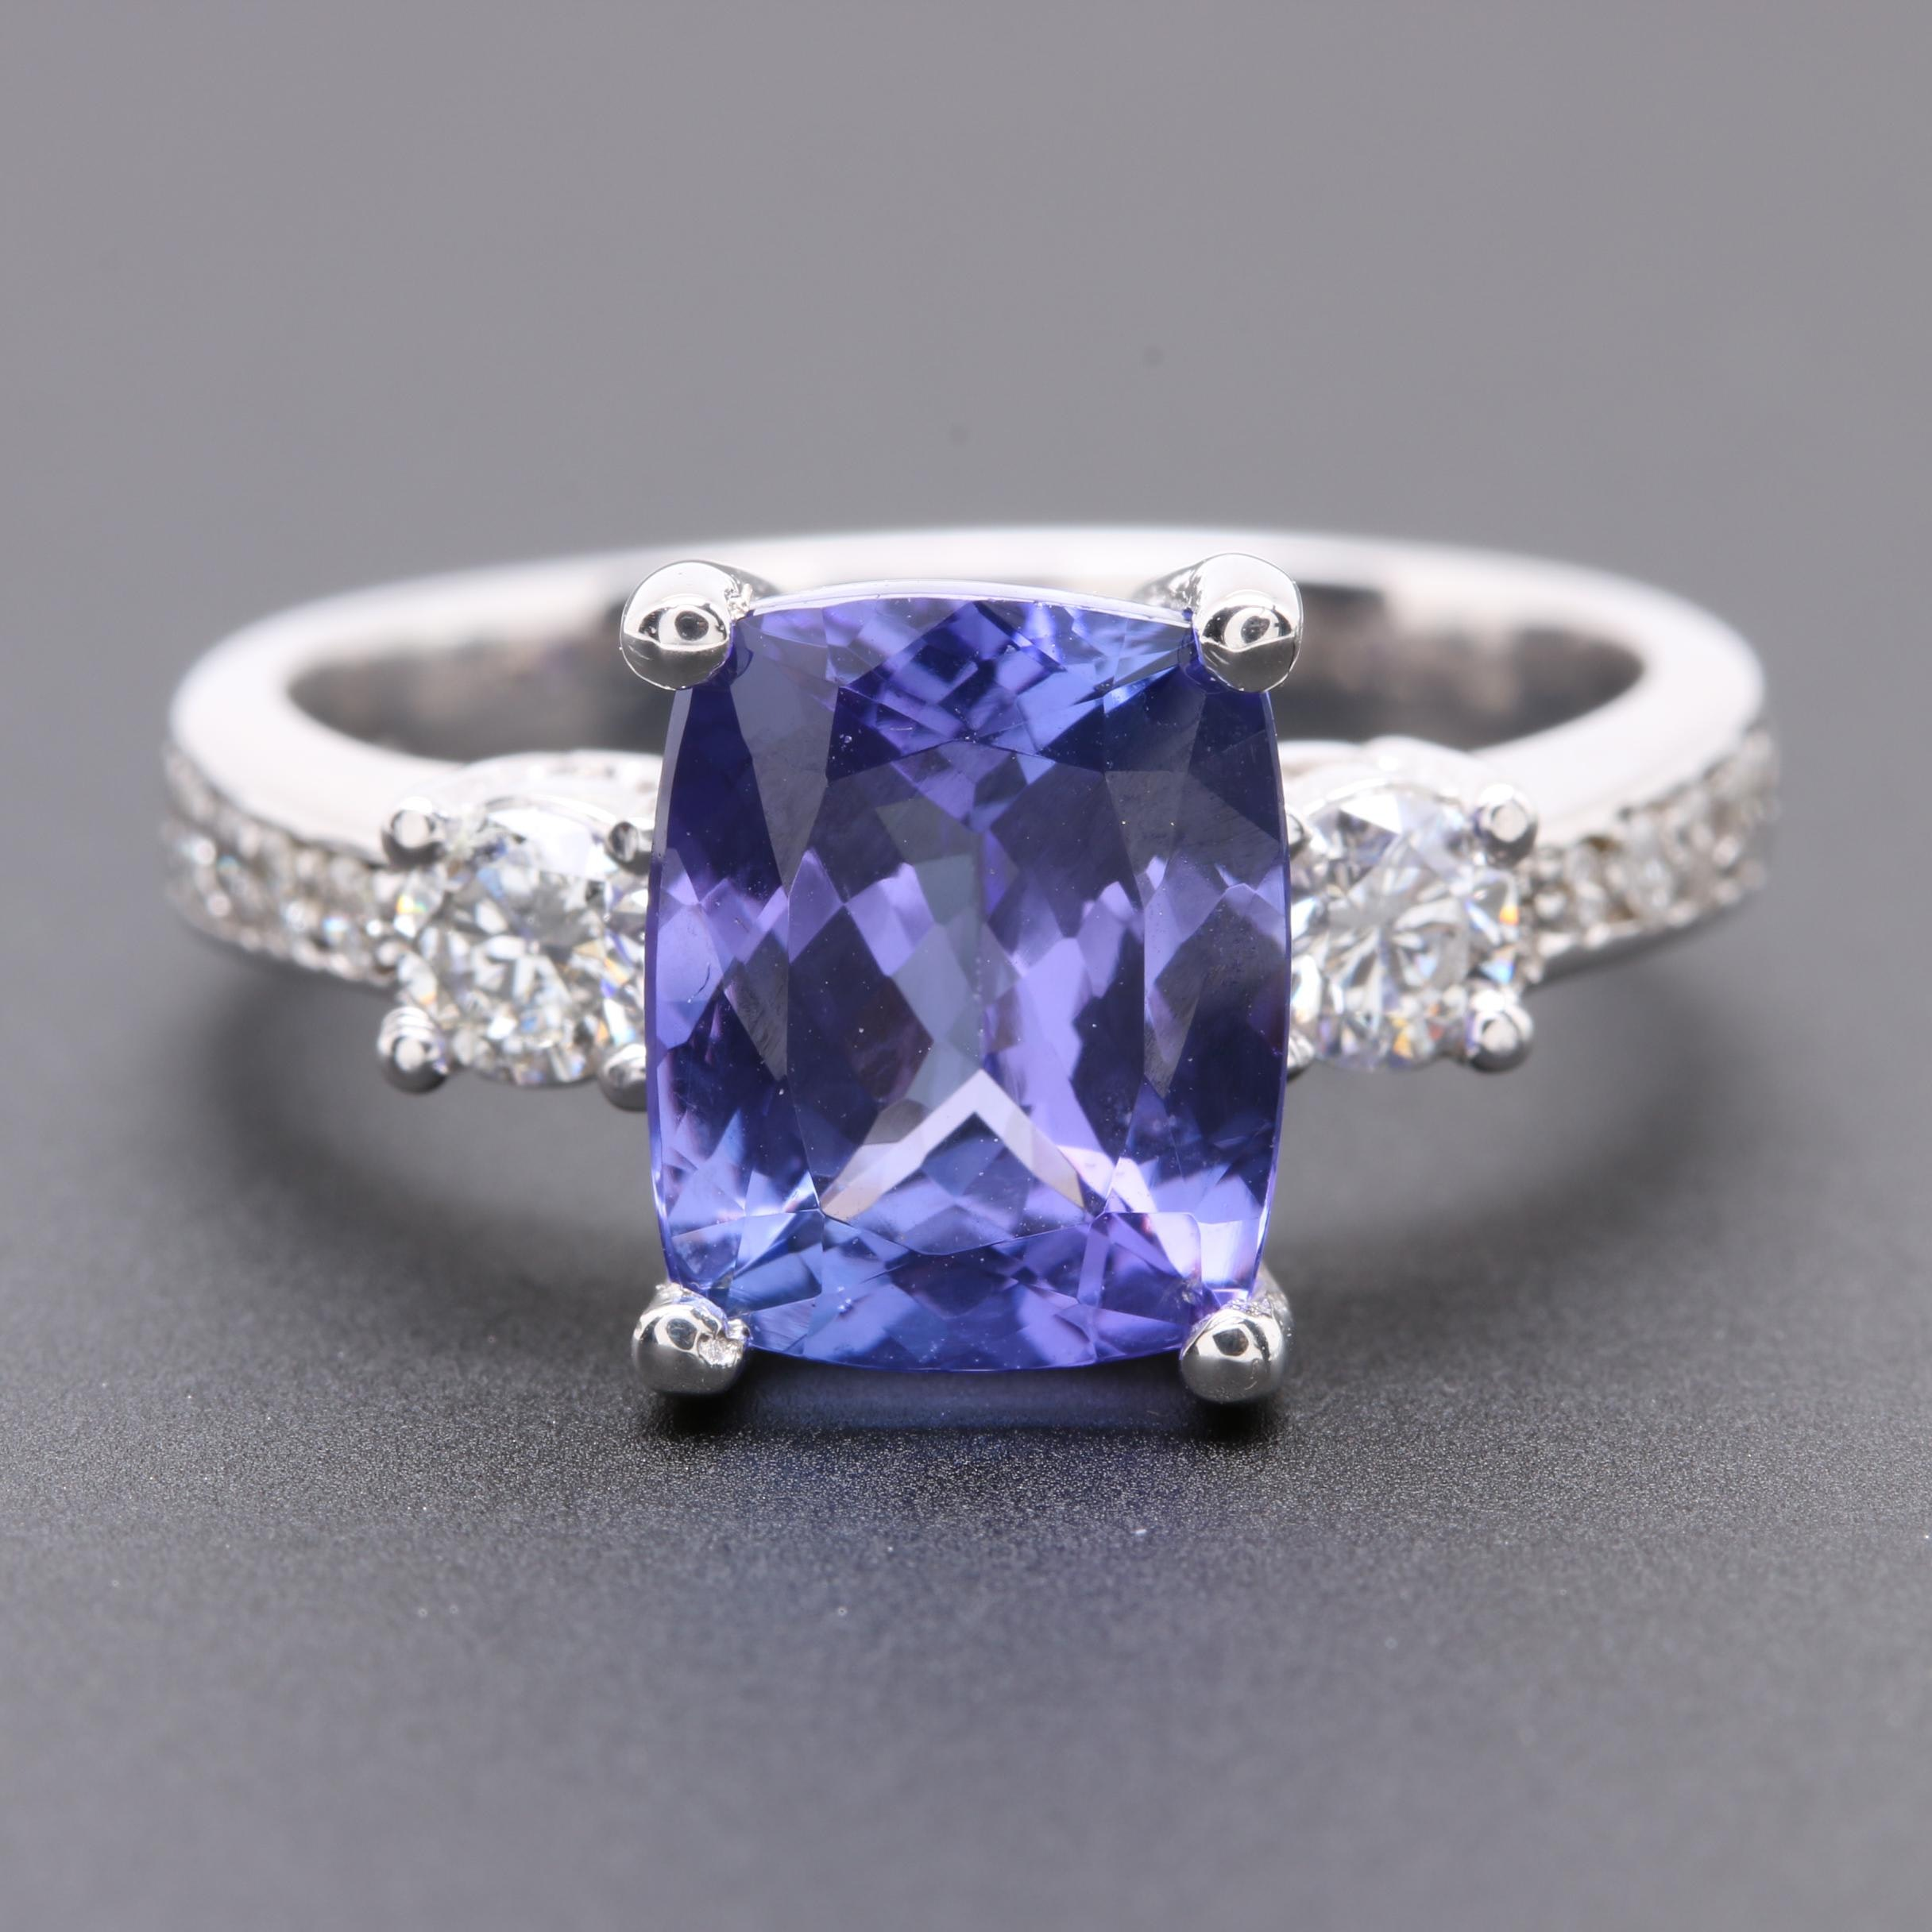 18K White Gold 3.23 CT Tanzanite and Diamond Ring